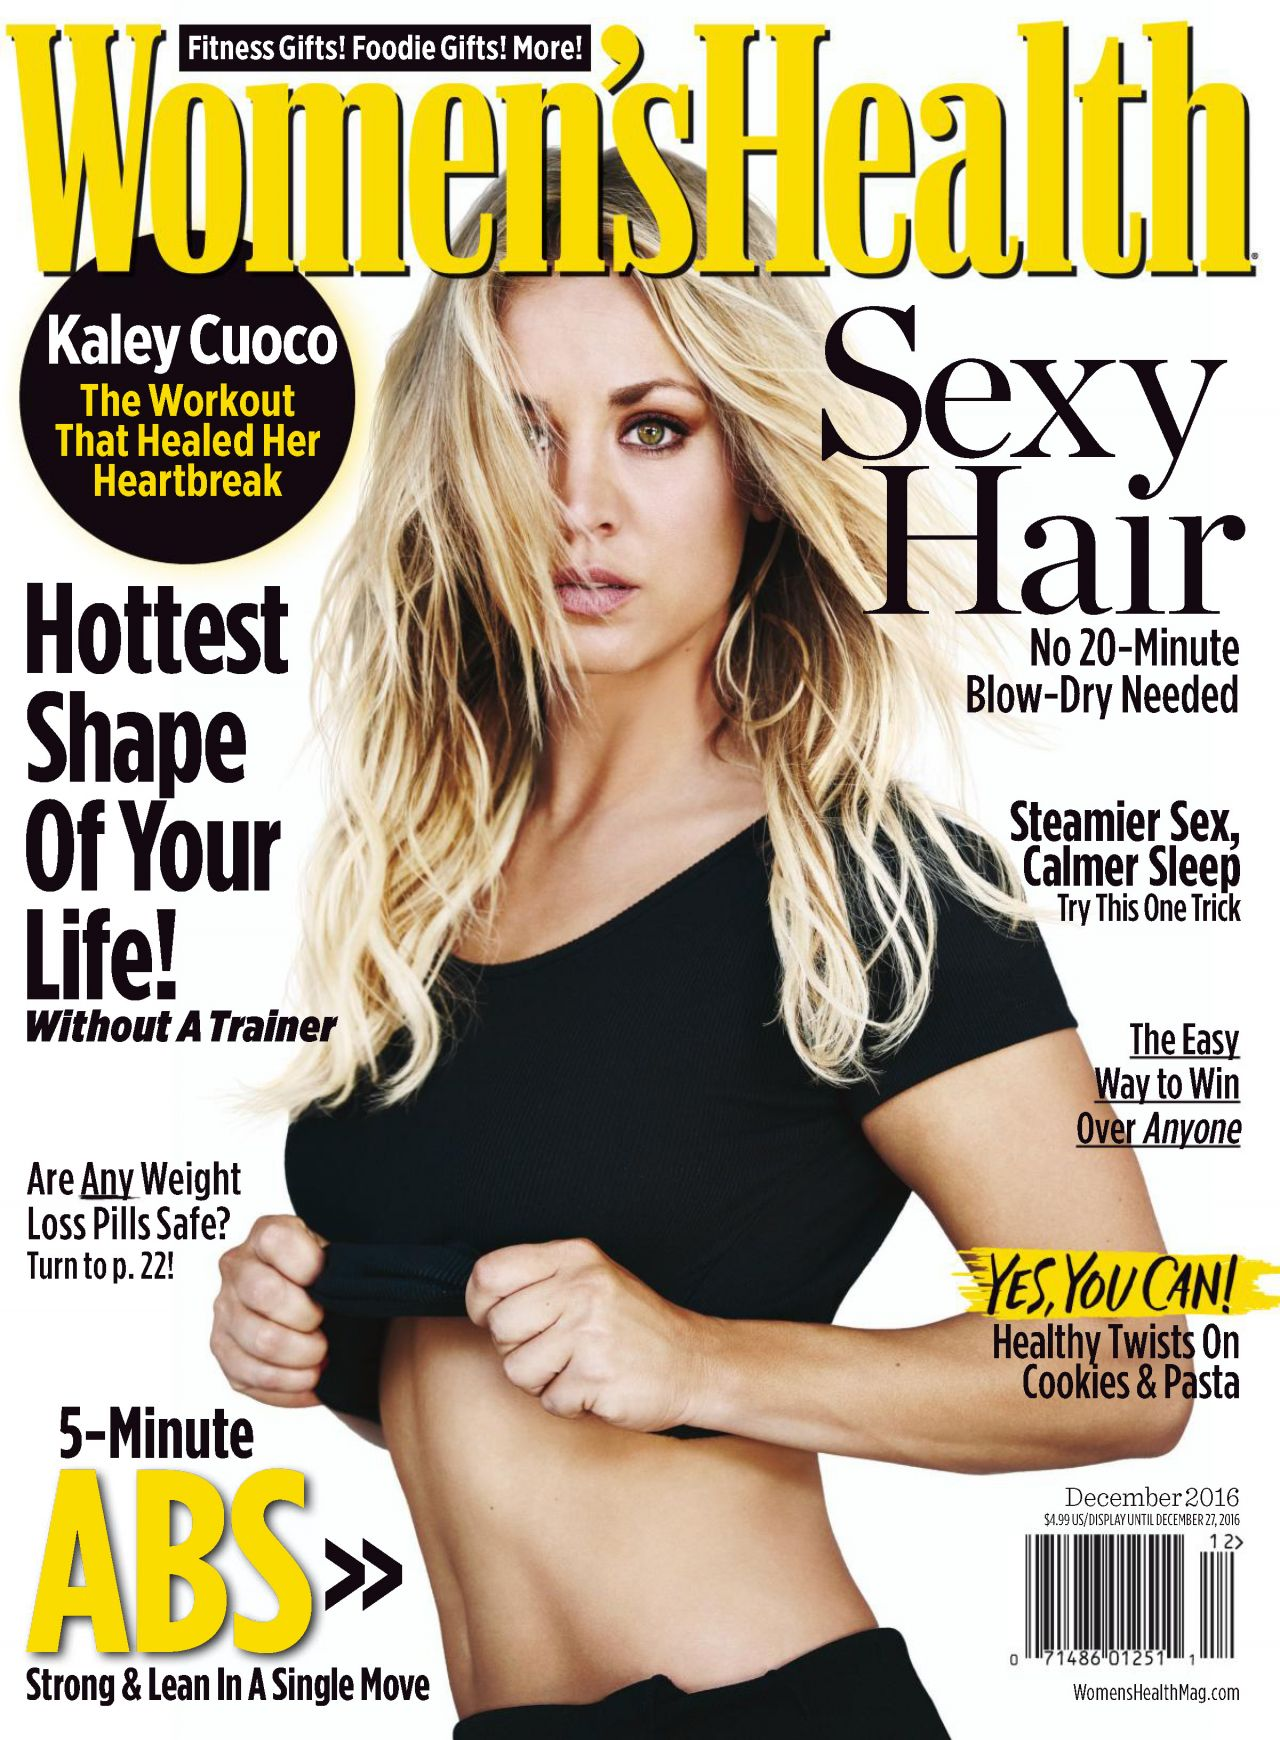 Click here to read about Cori Magnotta in Women's Health